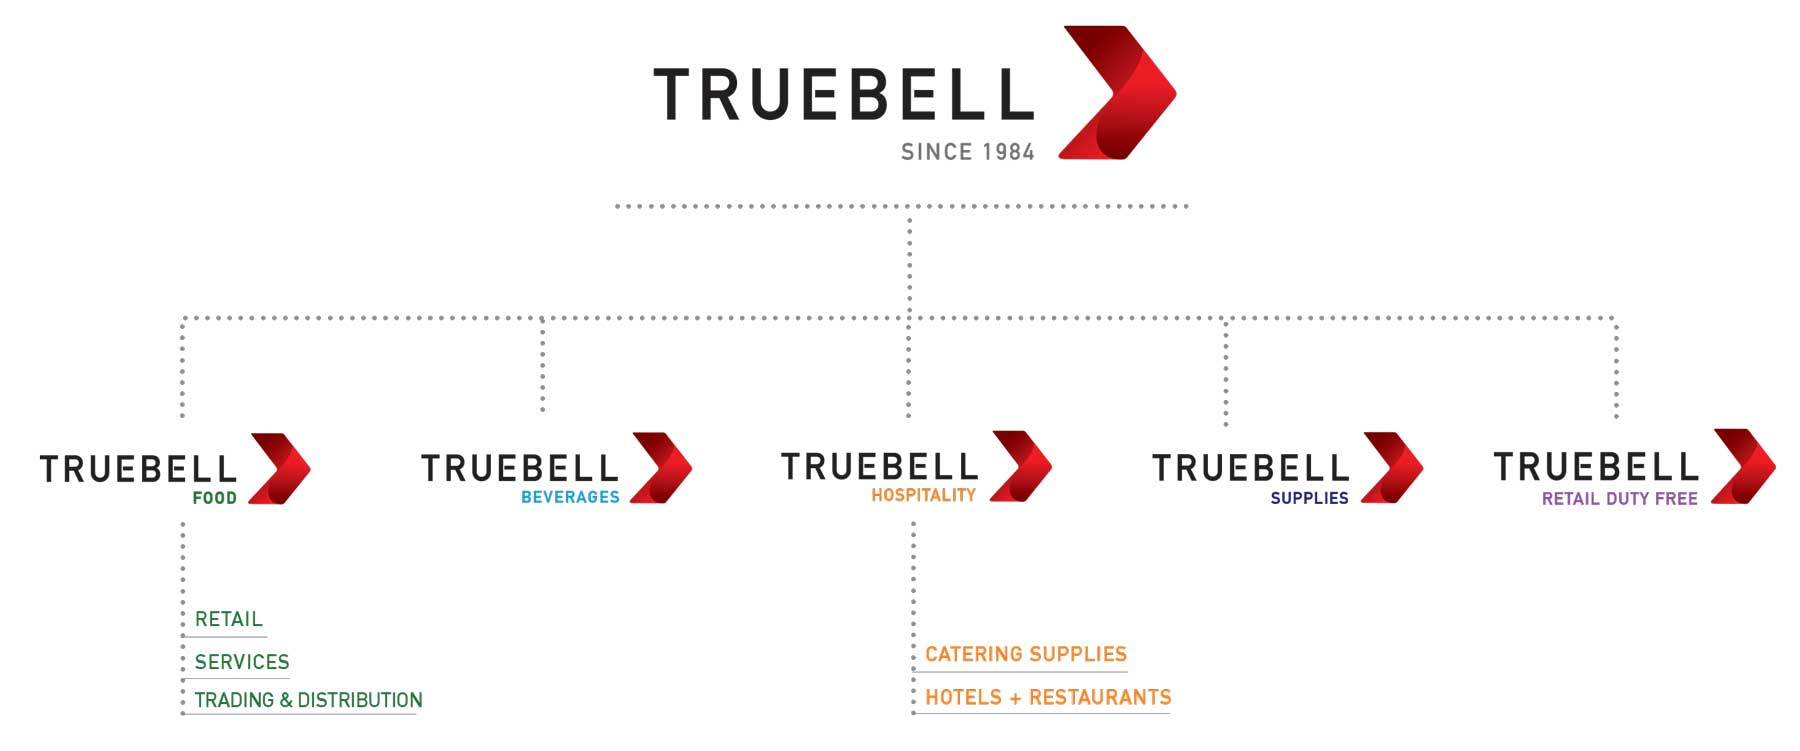 truebell organogram - ABOUT